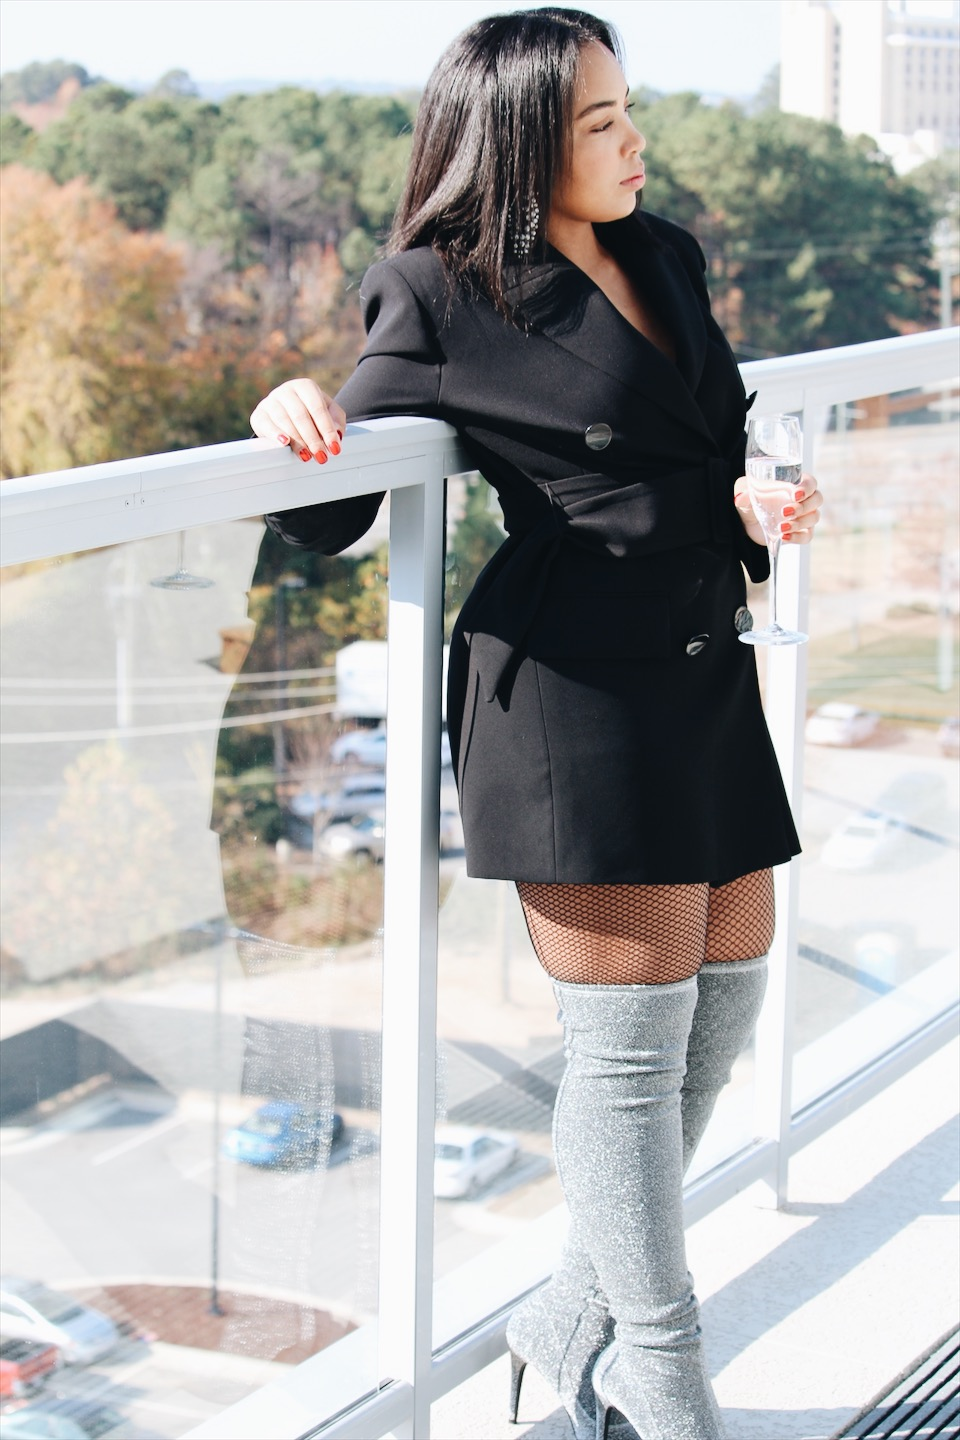 holiday-lookbook-zara-blazer-dress-fishnet-tights-silver-glitter-over-the-knee-otk-boots-statement-earrings-christmas-new-year-fashion-and-style-8.JPG